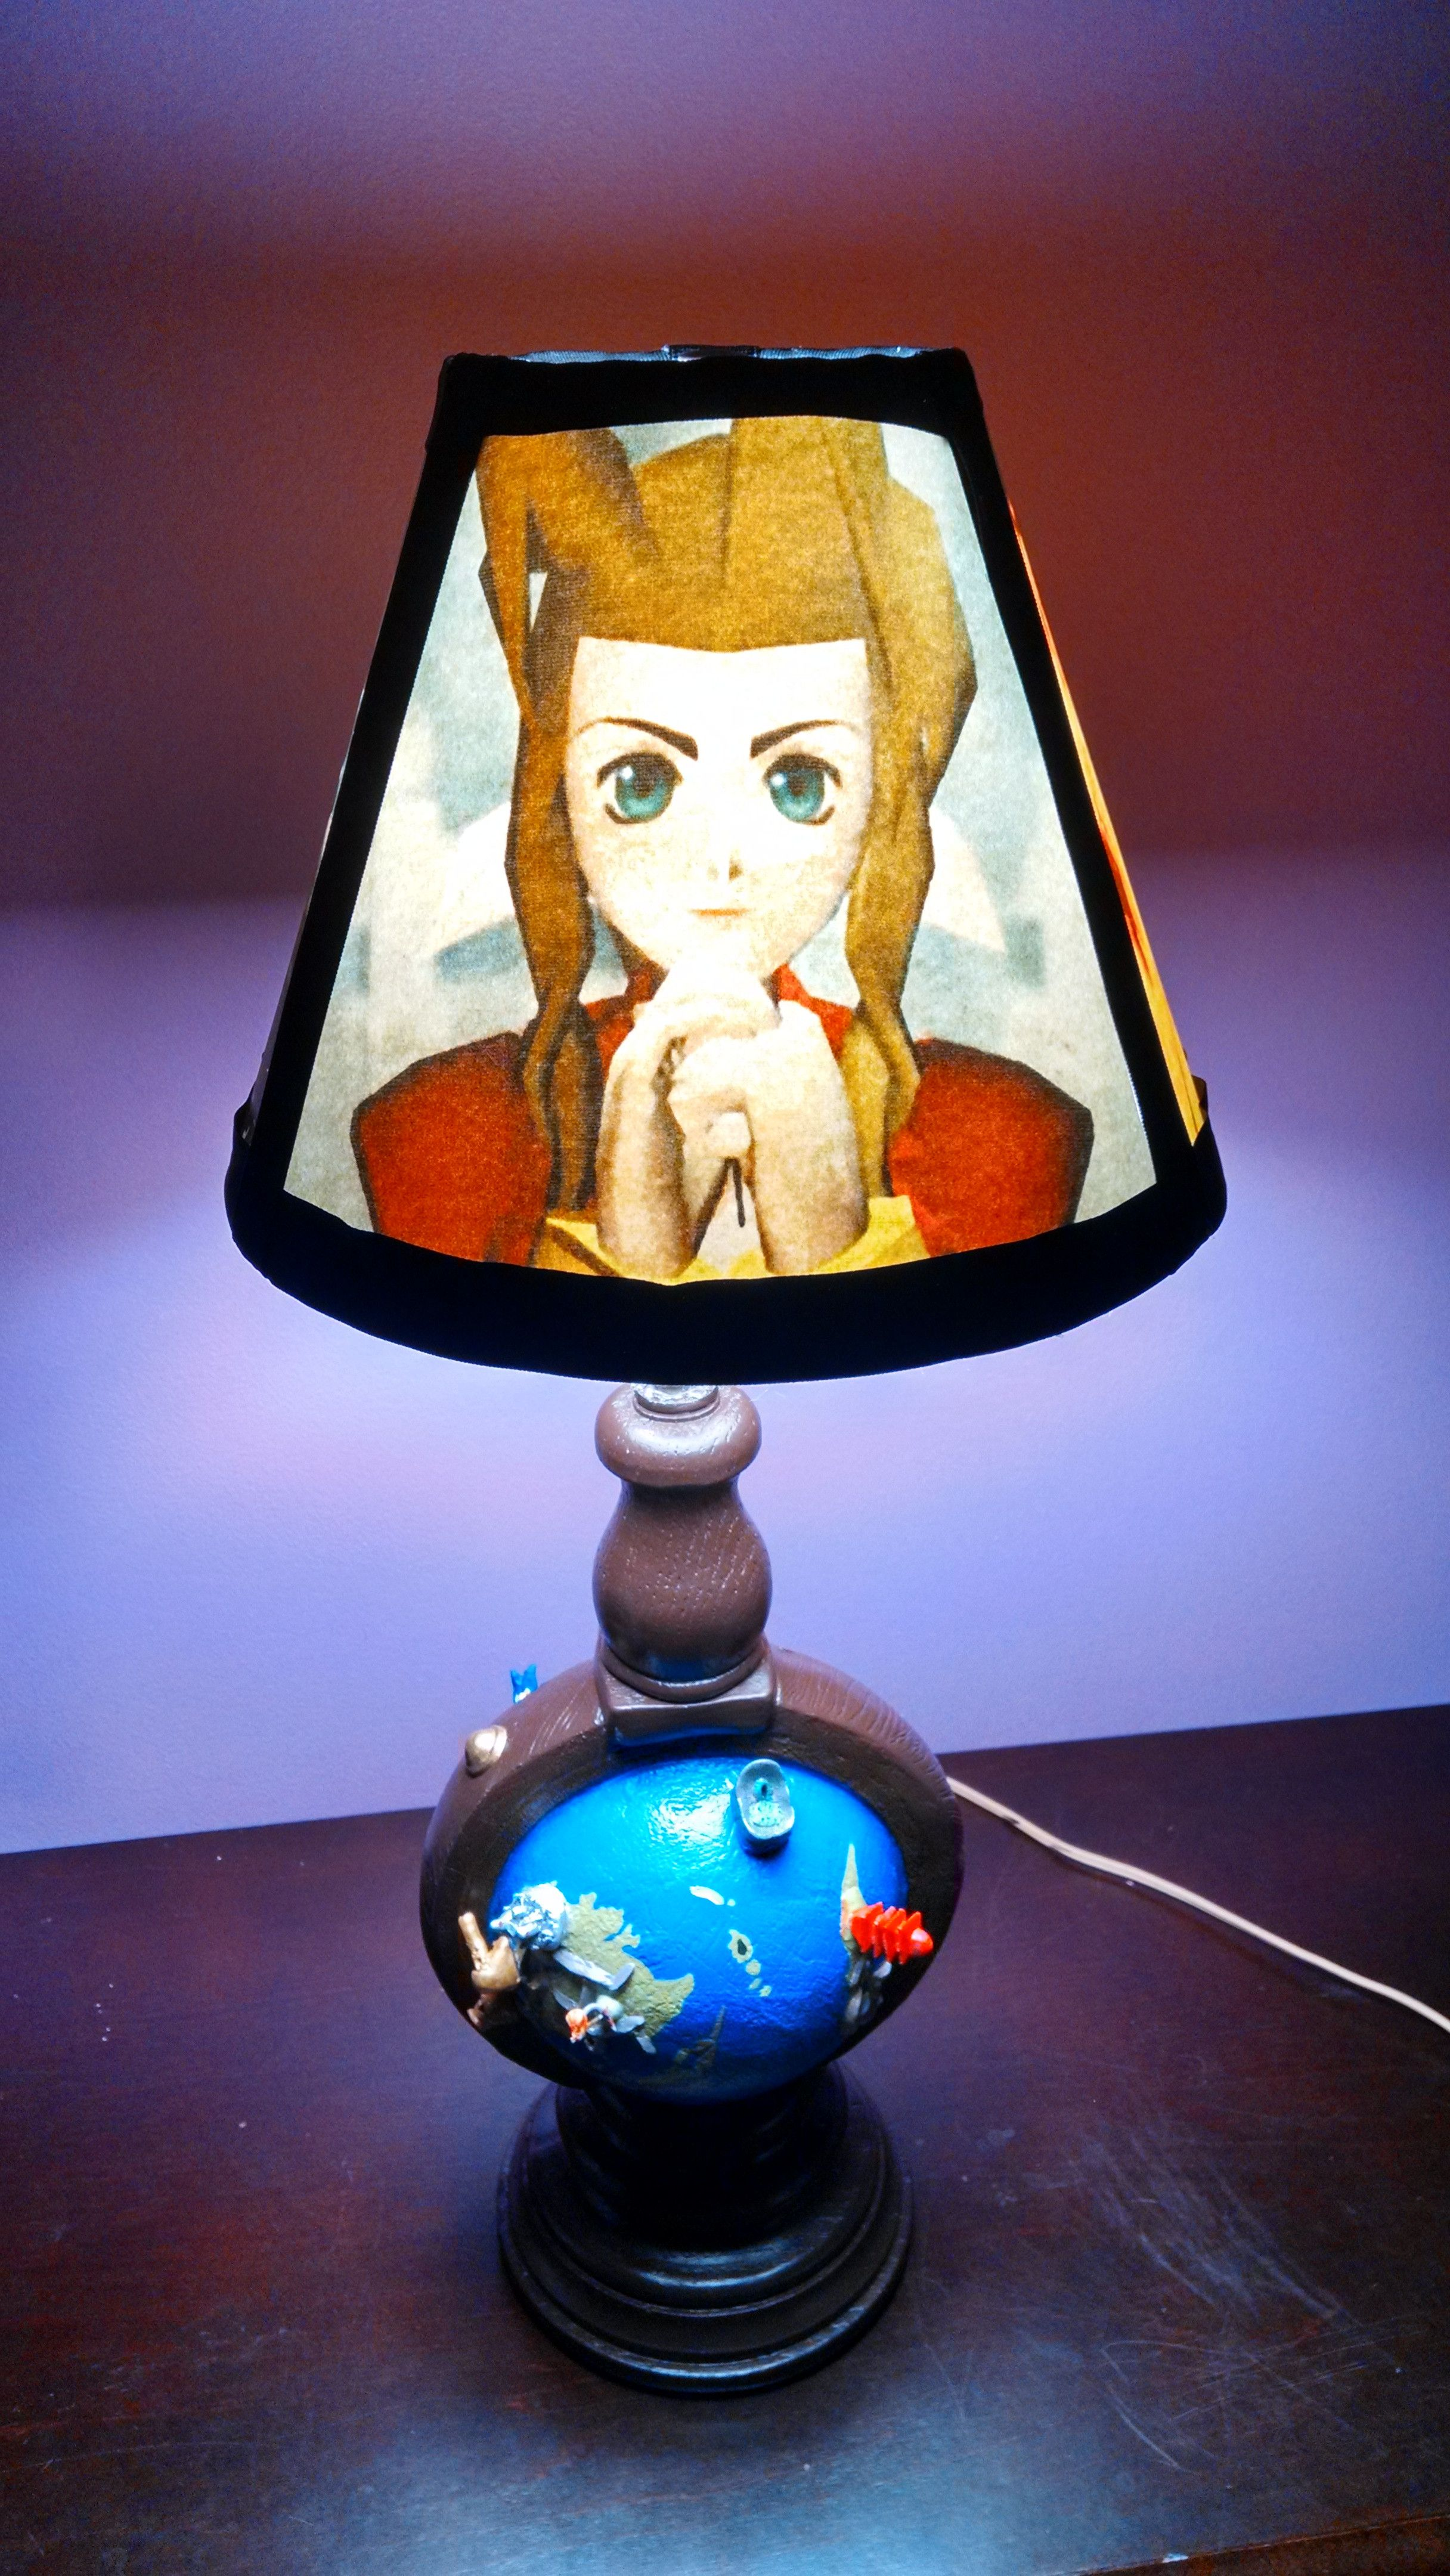 Final Fantasy VII lamp